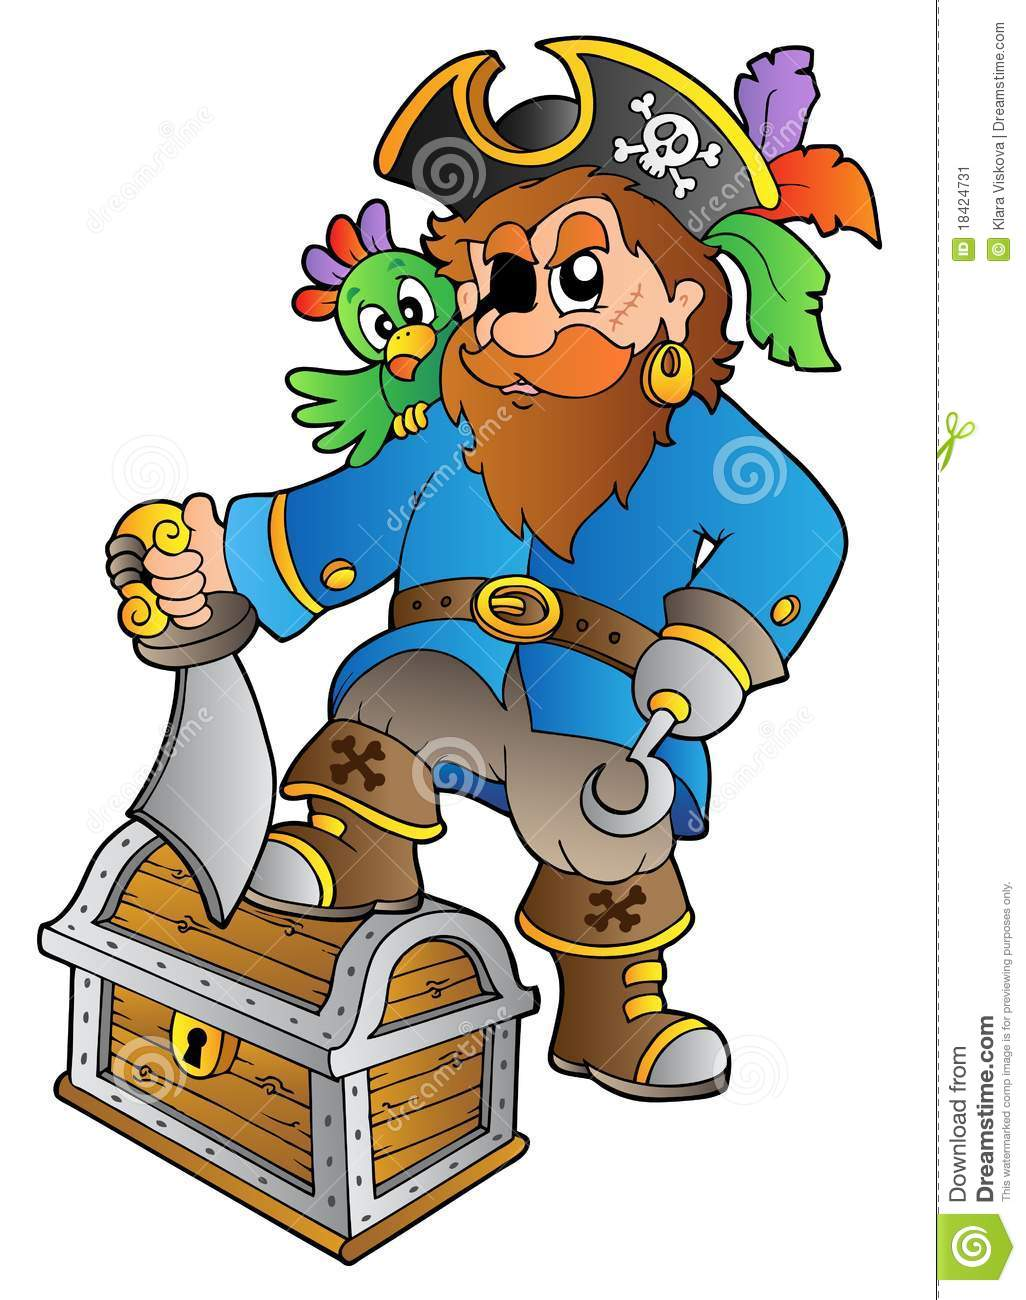 Pirate Standing On Treasure Chest Stock Image - Image: 18424731